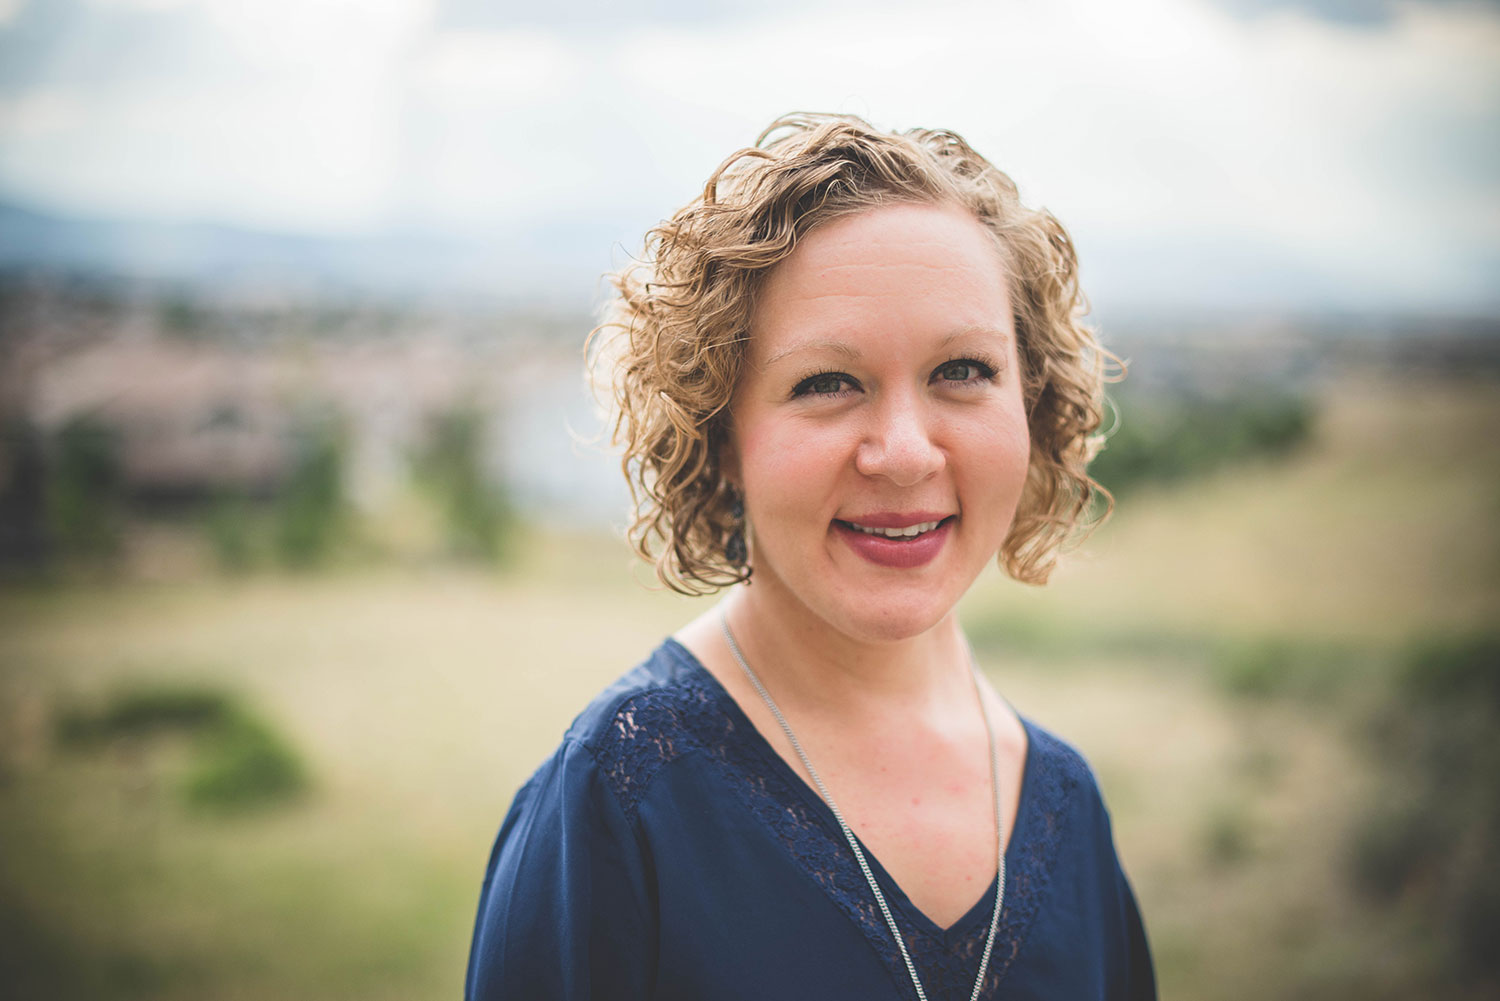 Nicole Sidebottom | The Clarity Group Therapist. | Nicole specializes in chronic illnesses, grief and loss, post-divorce care, life transitions, and more. The Clarity Group is based in Lone Tree, Colorado, just outside of Denver.